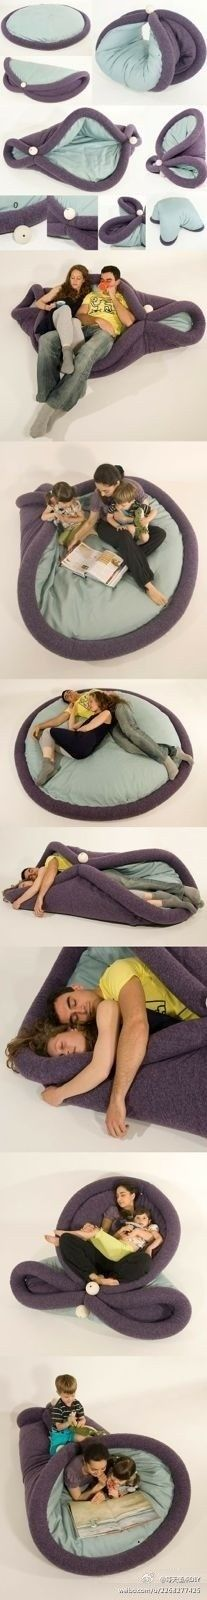 This is the weirdest, most versatile pillow I have ever seen. I think it is kind of neat.